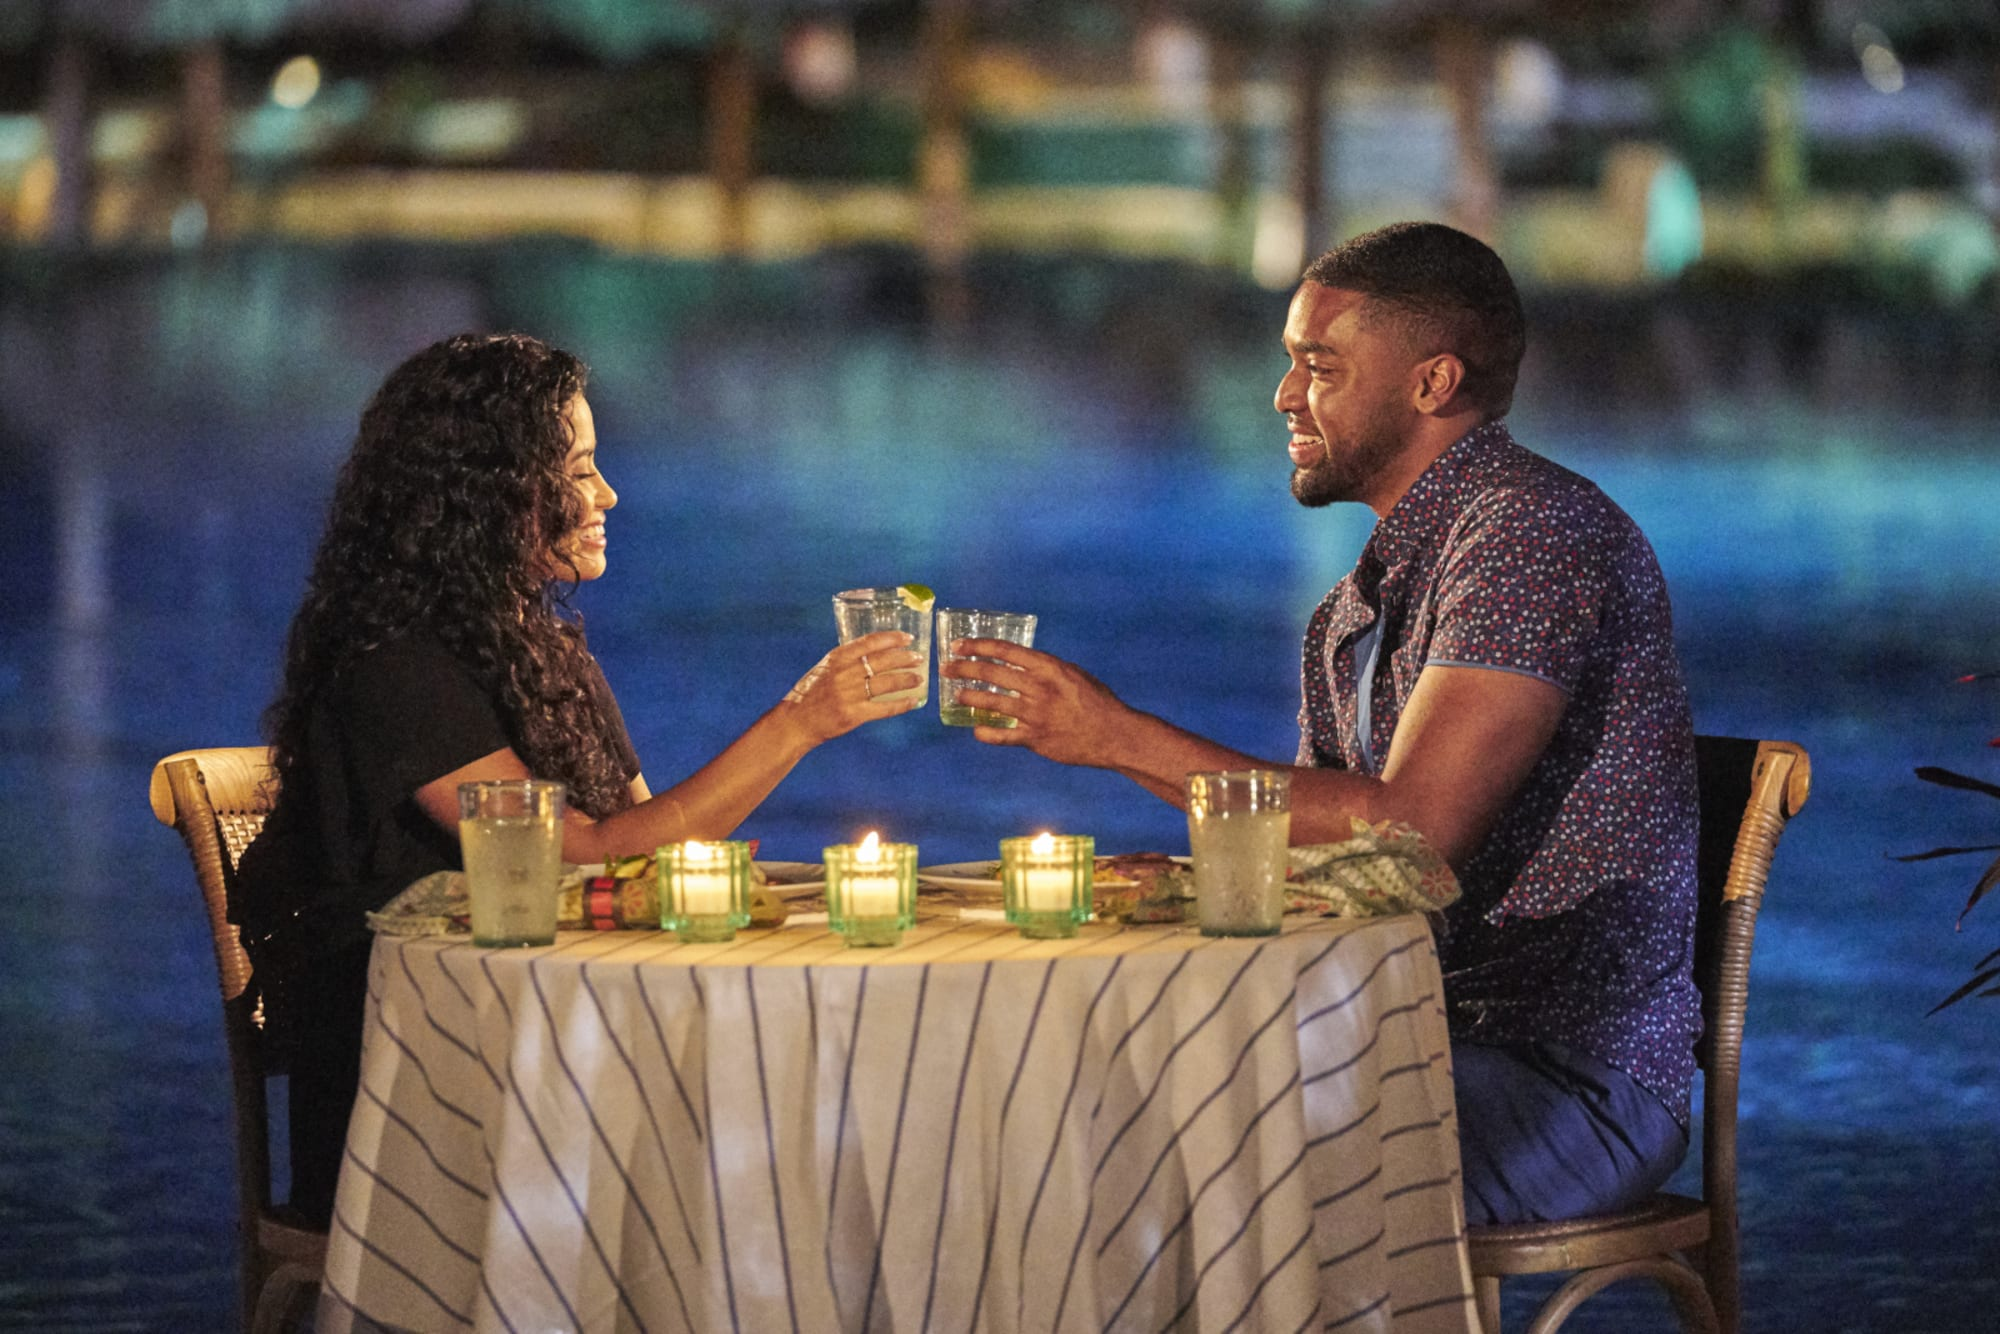 Bachelor in Paradise Season 7, Episode 4: How to watch